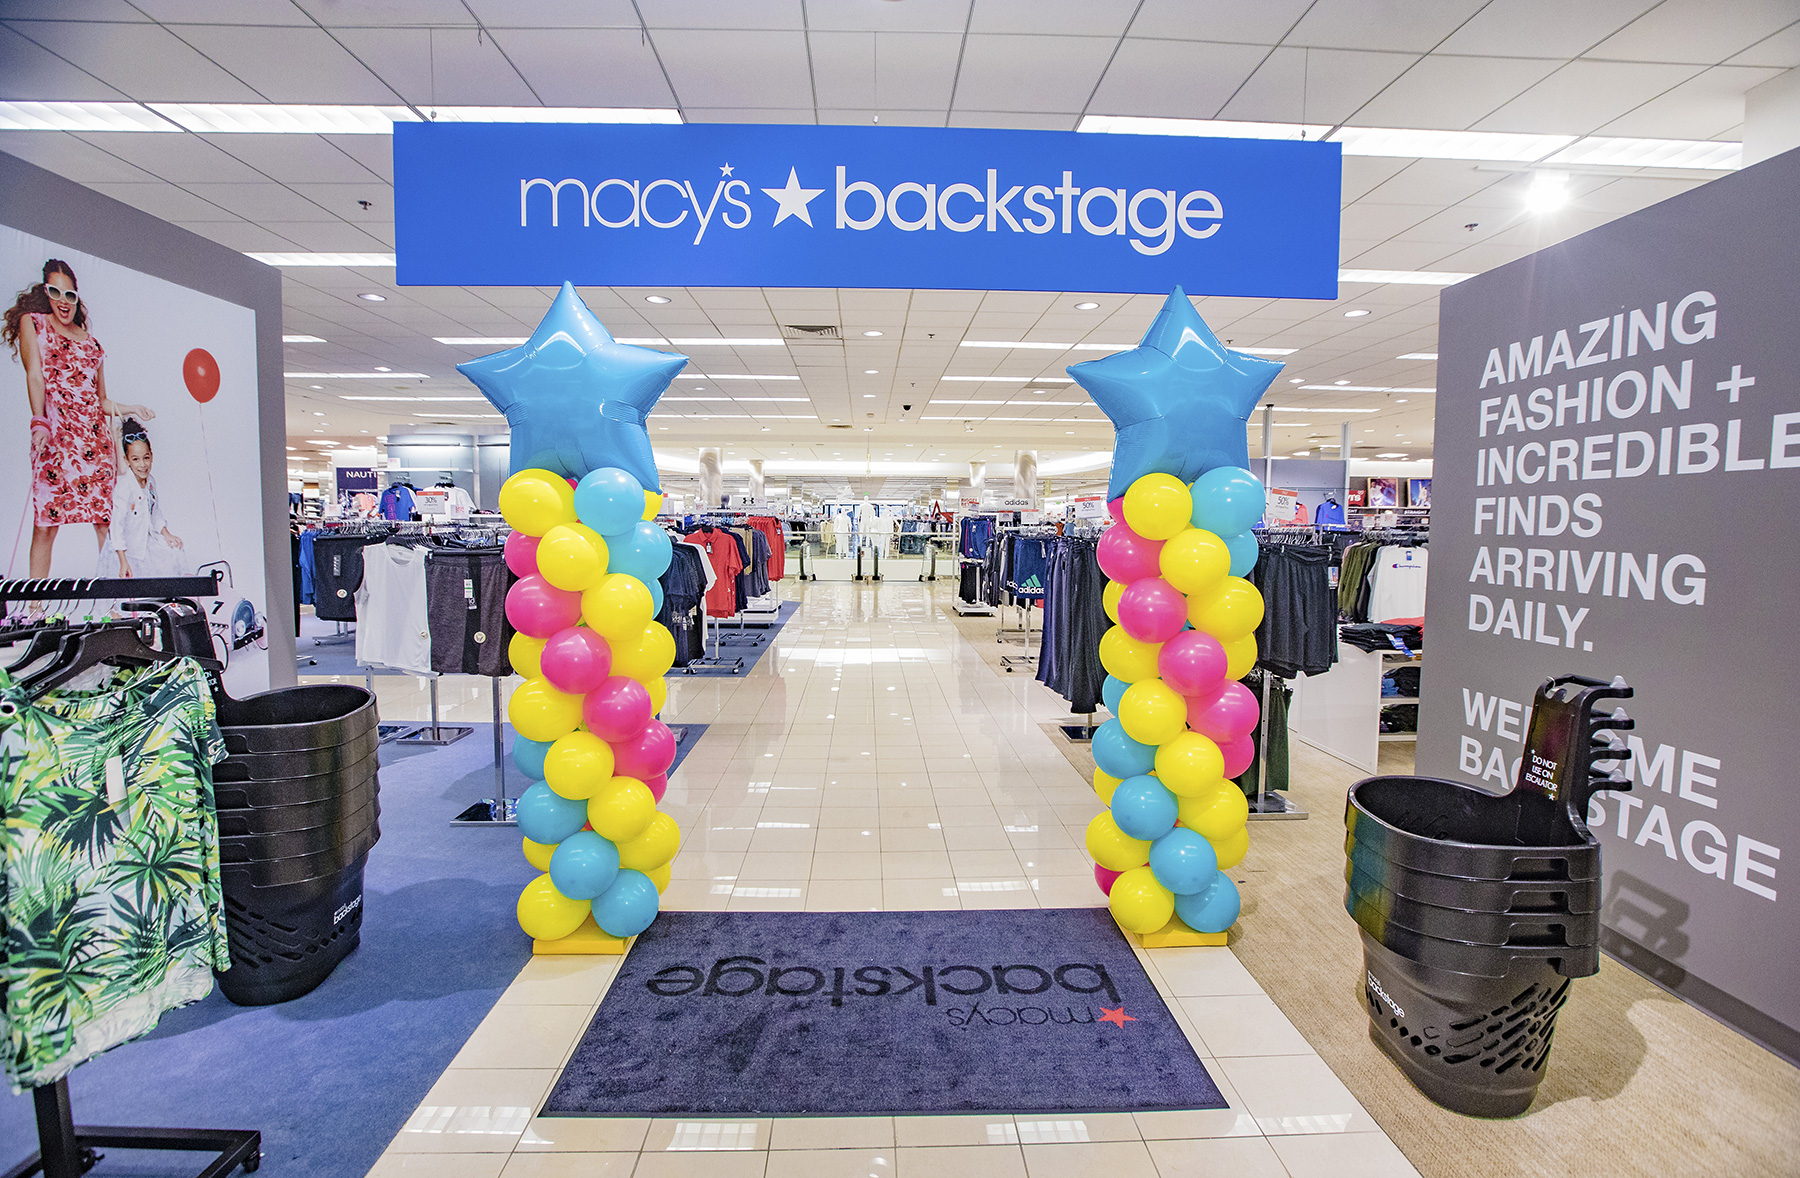 back to school shopping at macy's backstage